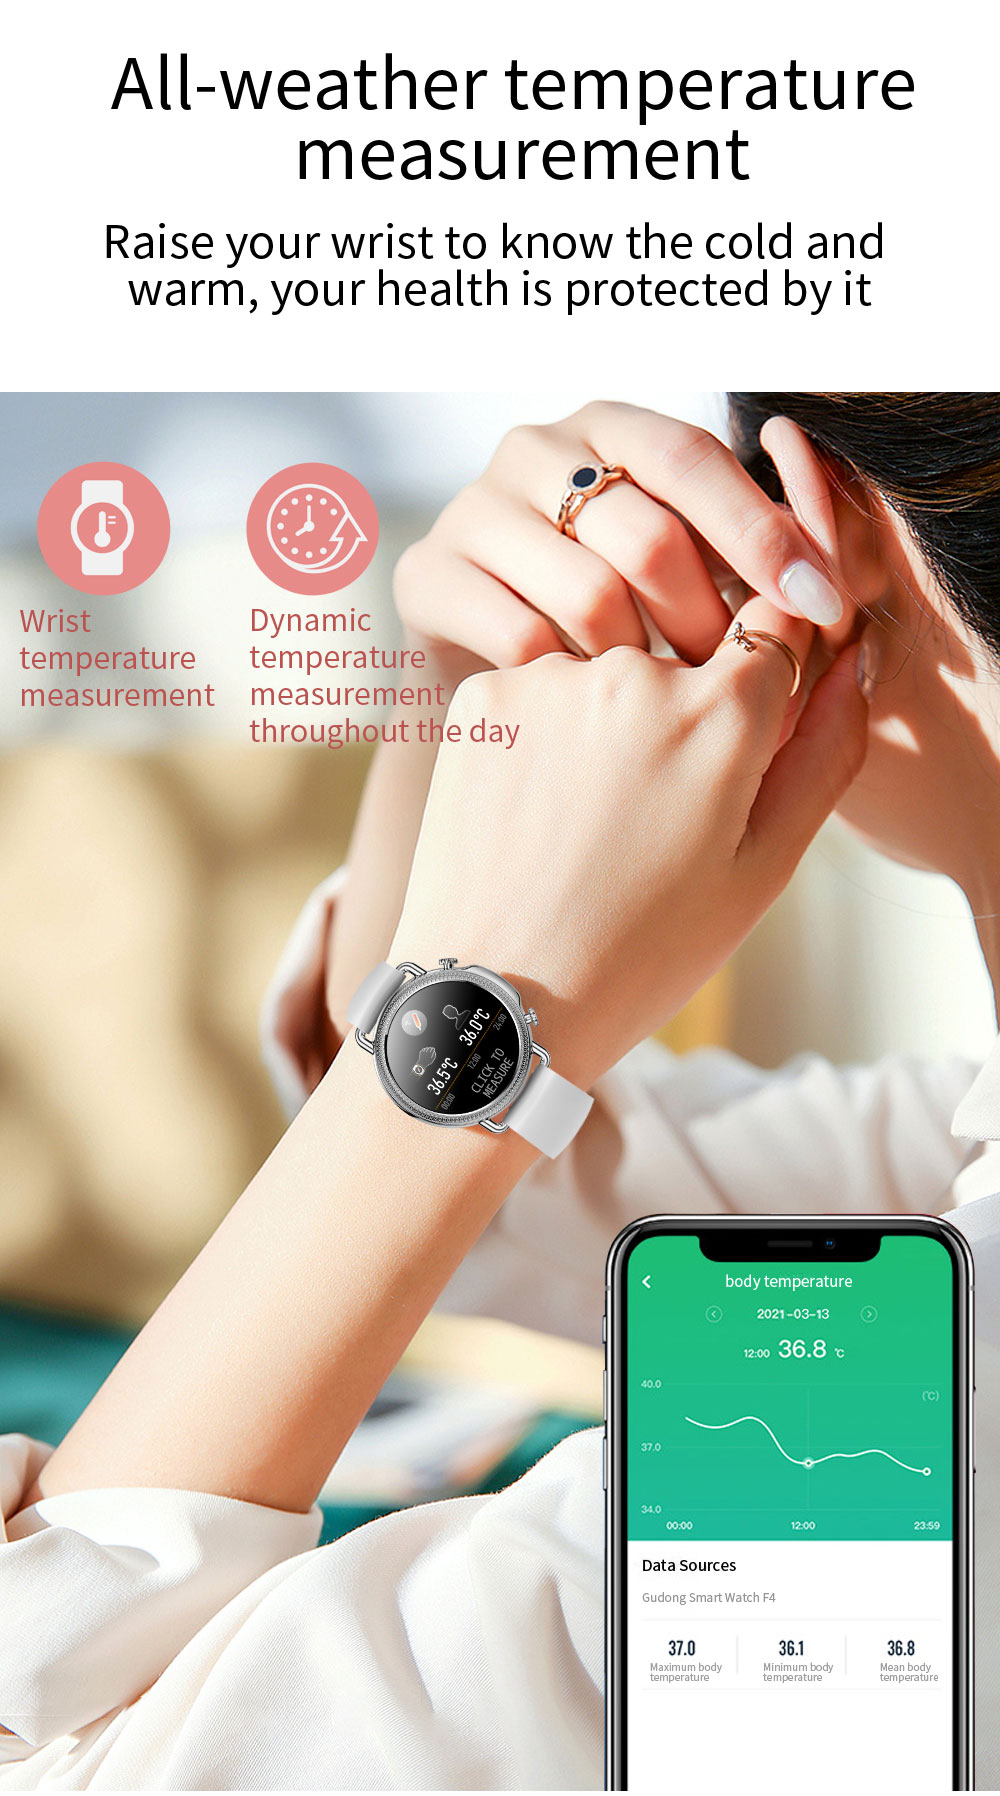 H5968c04b64c54bae9f6bb0111da73030e 2021 Women Smart Watch 1.28 inch HD Screen IP67 Waterproof Lady's Watches Body Temperature Heart Rate Monitor PK V23